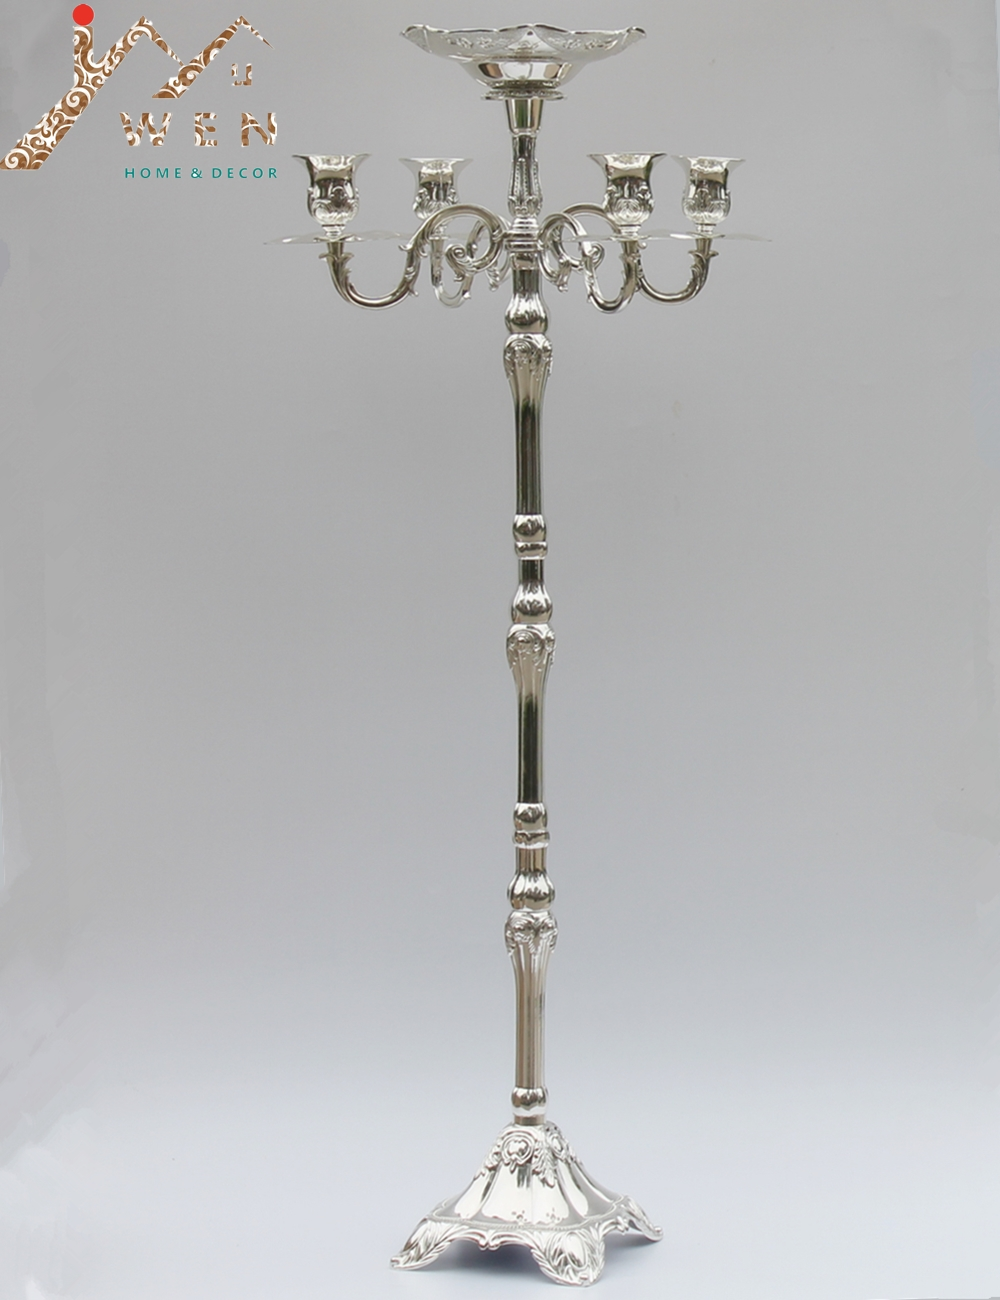 Top Rated Silver Plated Floor Candelabra 83cm Metal Candle Holder, Pure Silver Candleholder With Nice Flower Bowl